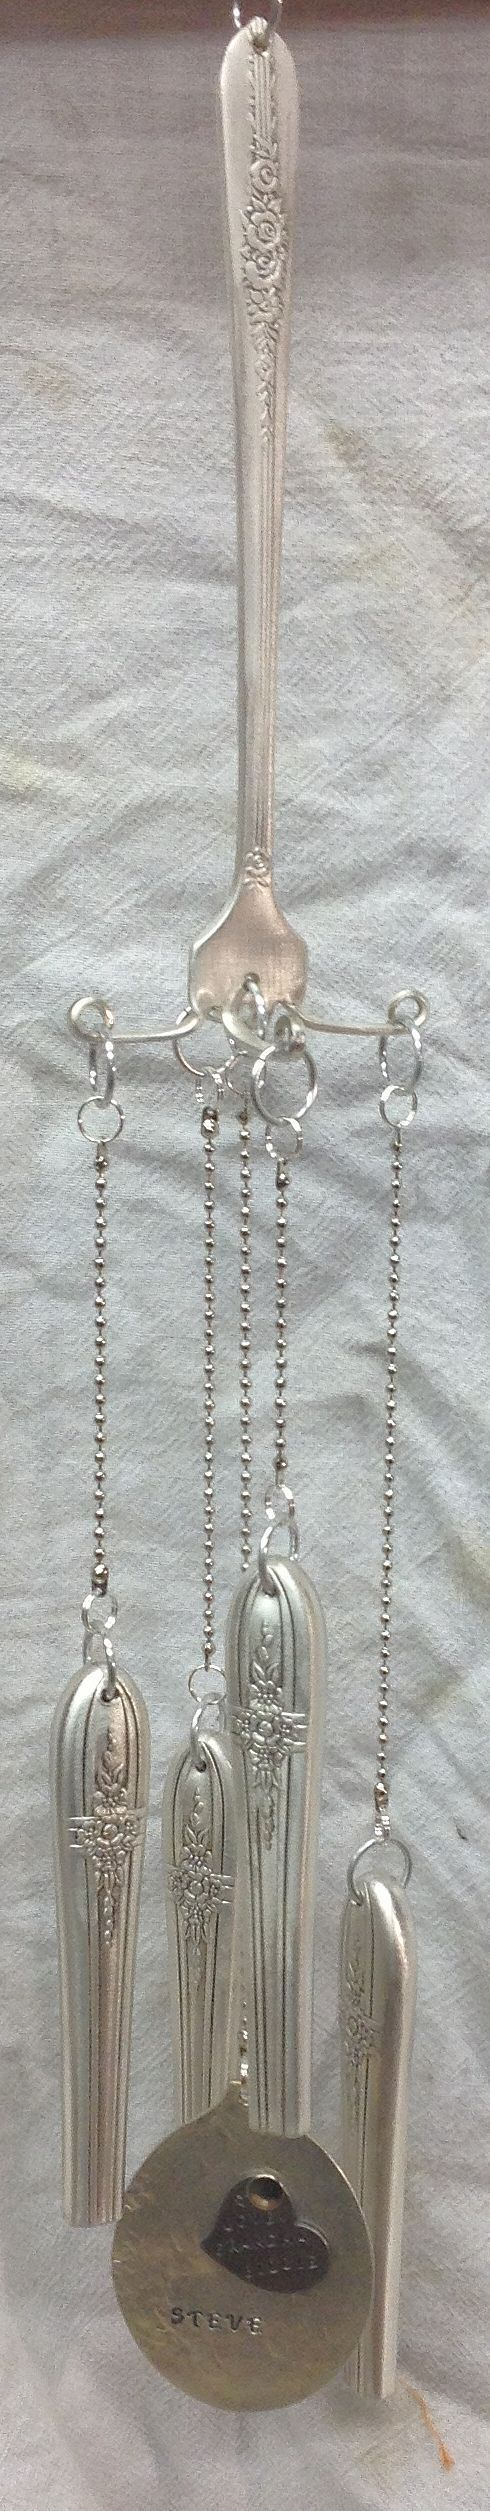 """Custom order stamped silver spoon, fork & knife windchime (part of a Remembrance set from 1 box of vintage/antique silverware) with removable keychain """"gong""""- made for Julie's Junquetique on etsy.com (1 of 5 pictures)"""